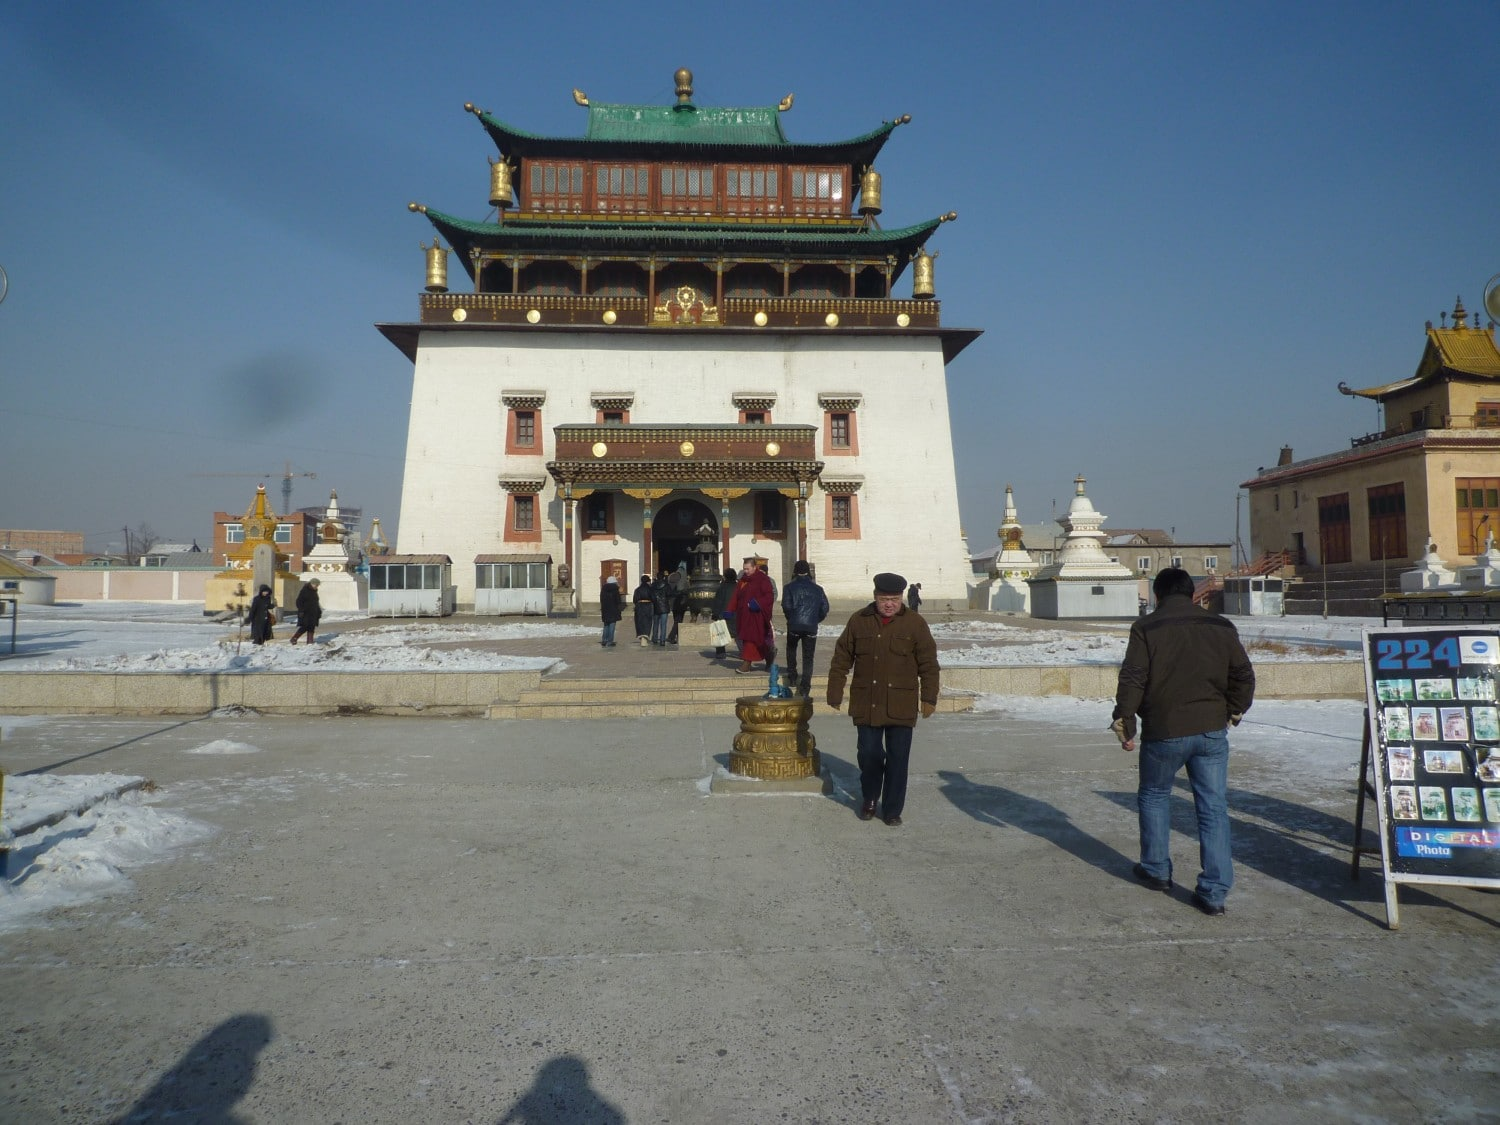 The Gandan Khir or the Gandantegchinlen Monastery, as it is more commonly known in English, is the main Buddist monastery in Ulaanbaatar